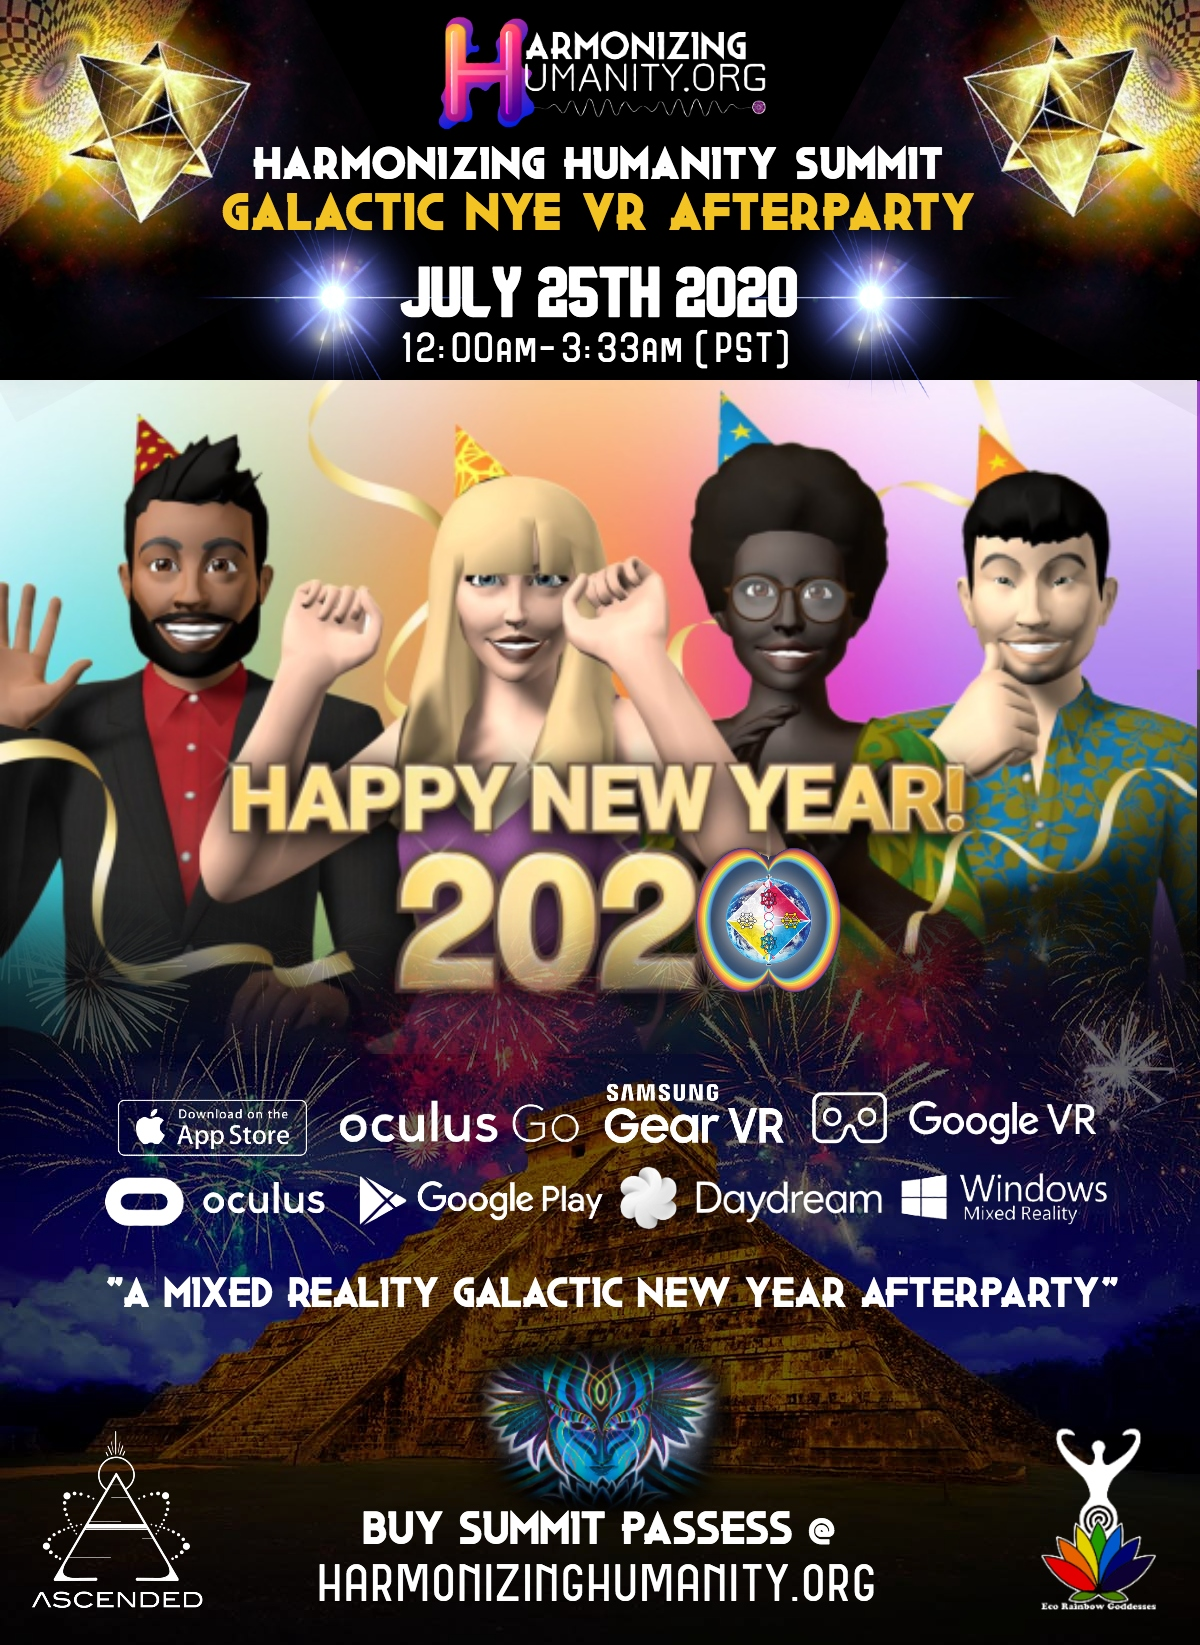 Harmonizing Humanity Sends Out the Call for Global Citizens to Attend Exciting Global Summit Taking Place July 24th-27th 2020